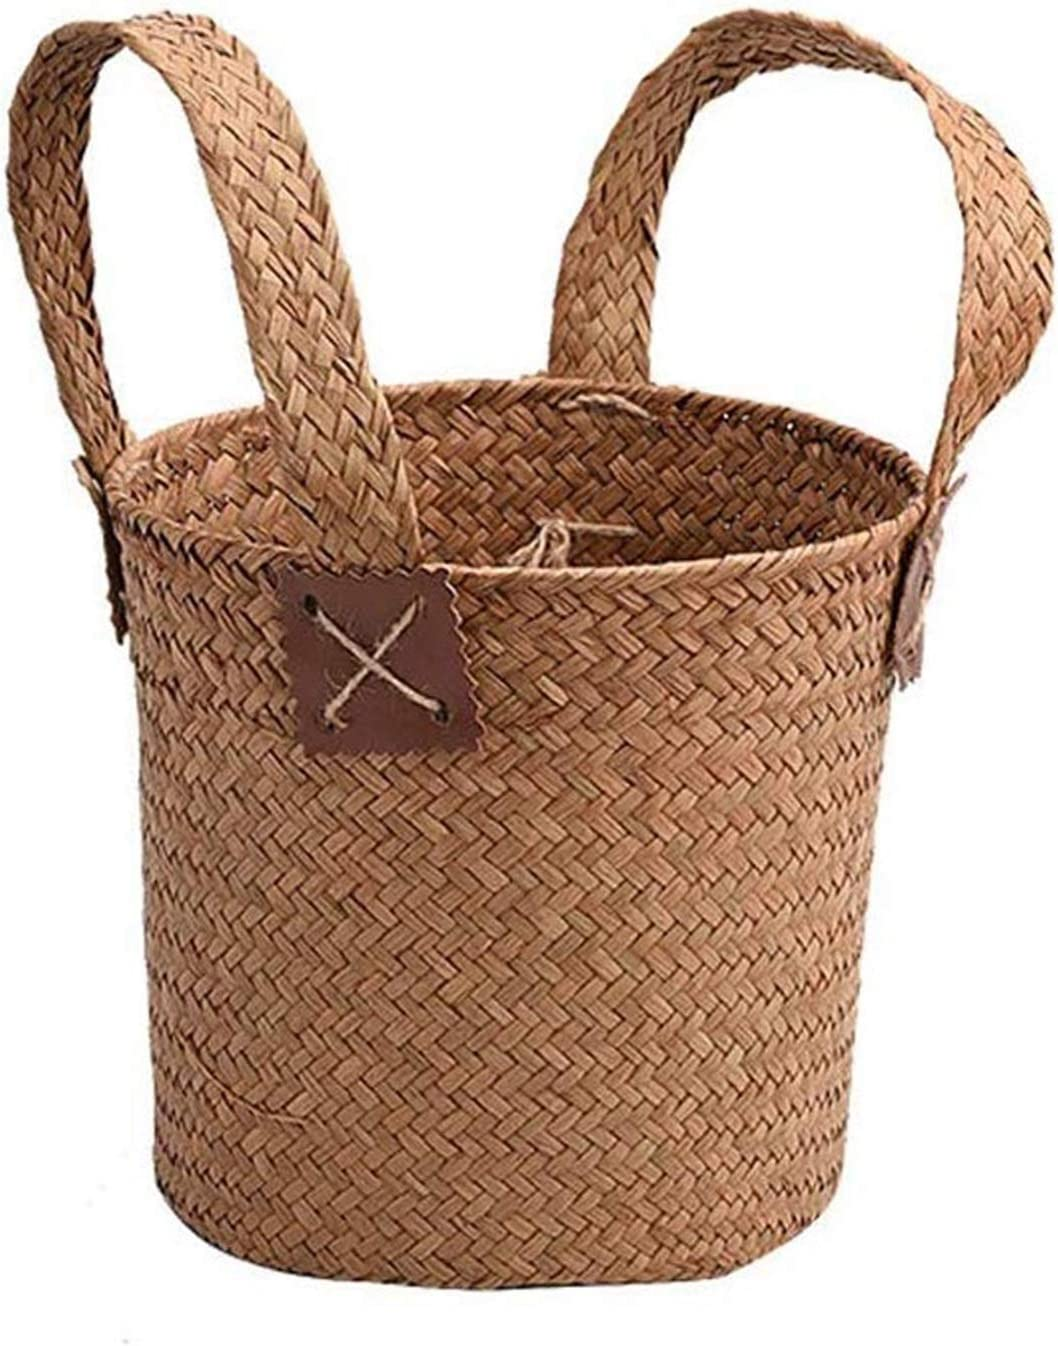 DSWHM New Rapid rise Orleans Mall Storage Baskets Basket Straw Clothes Stor